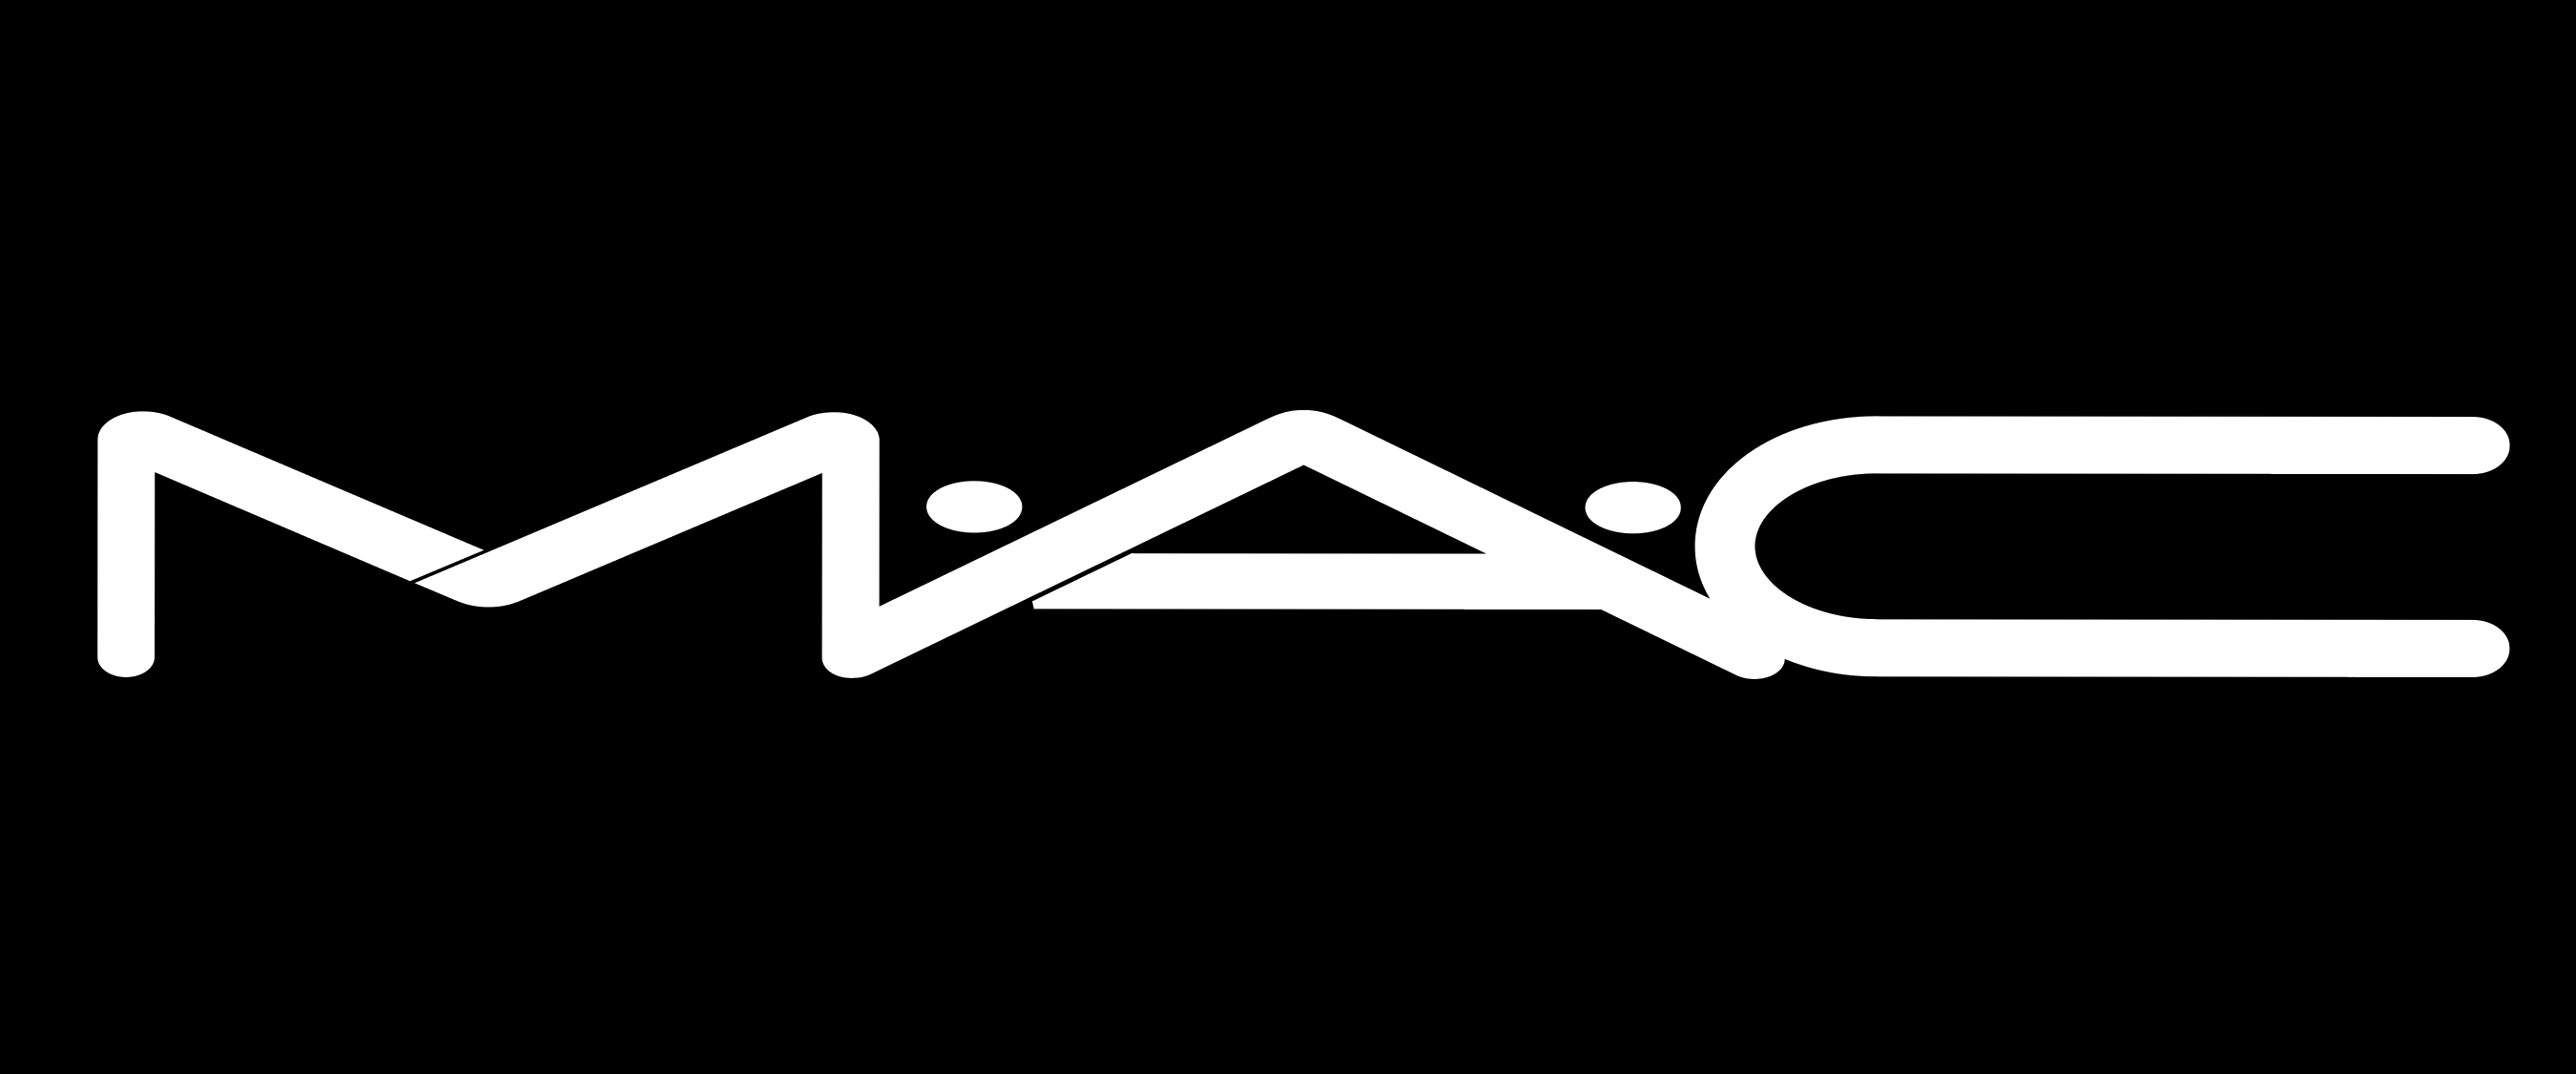 Mac_logo_black